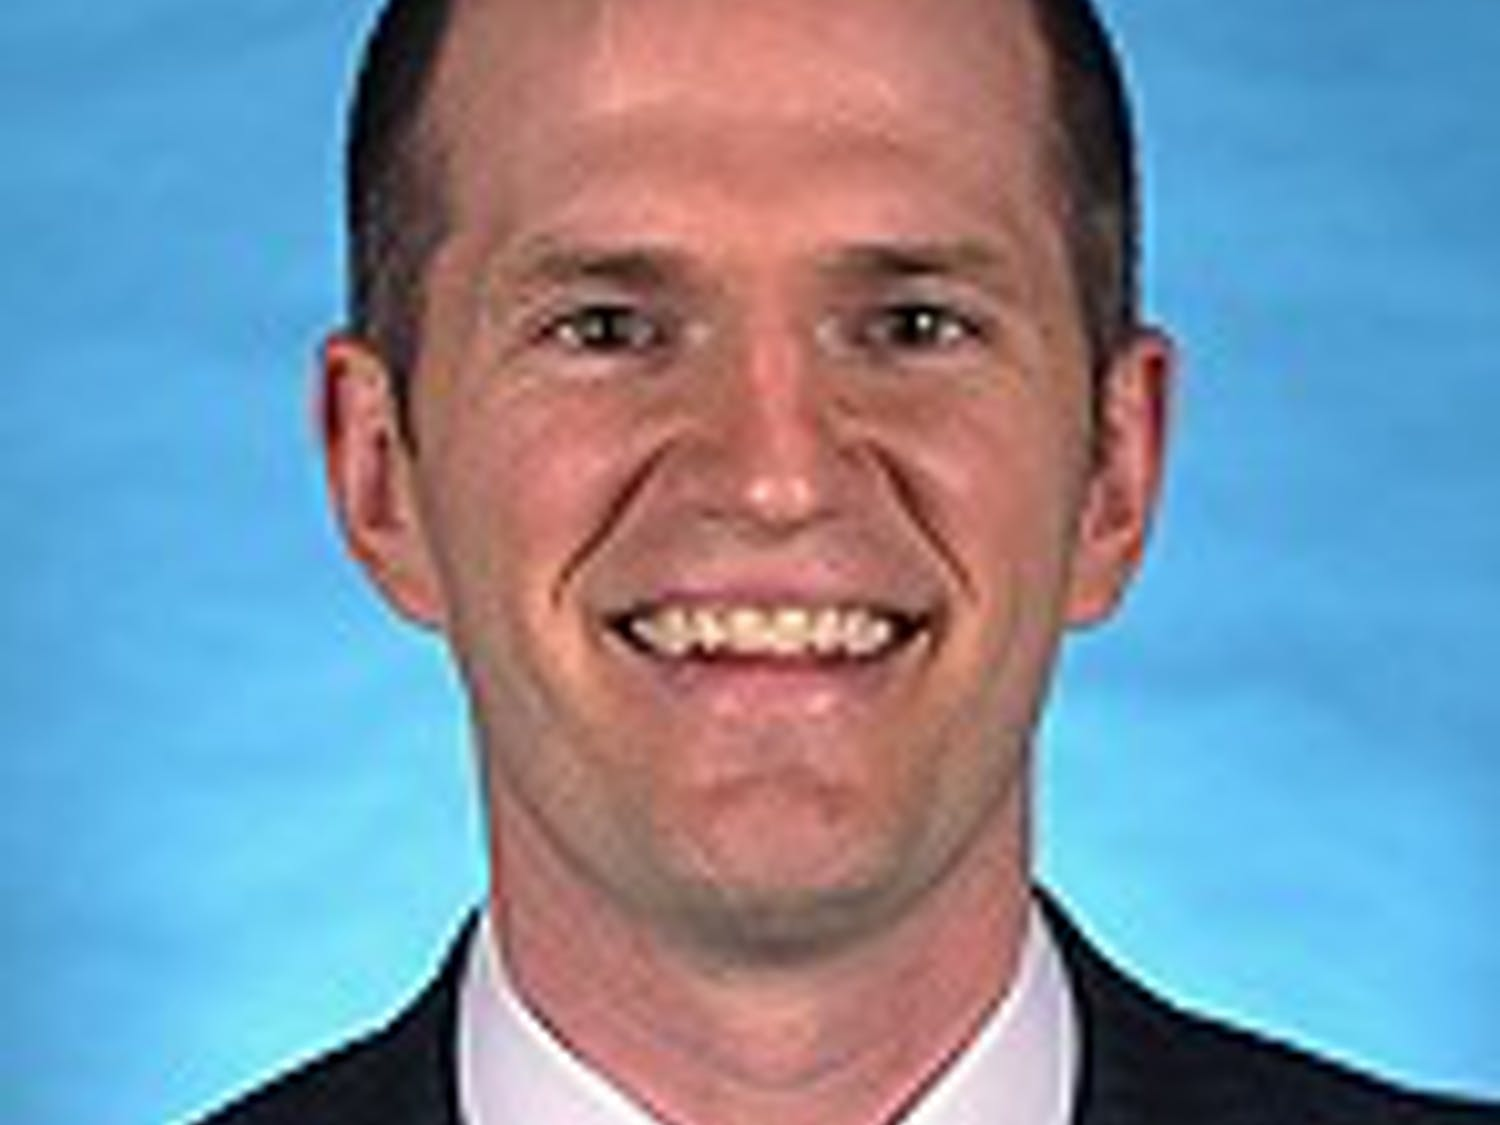 Brad Frederick